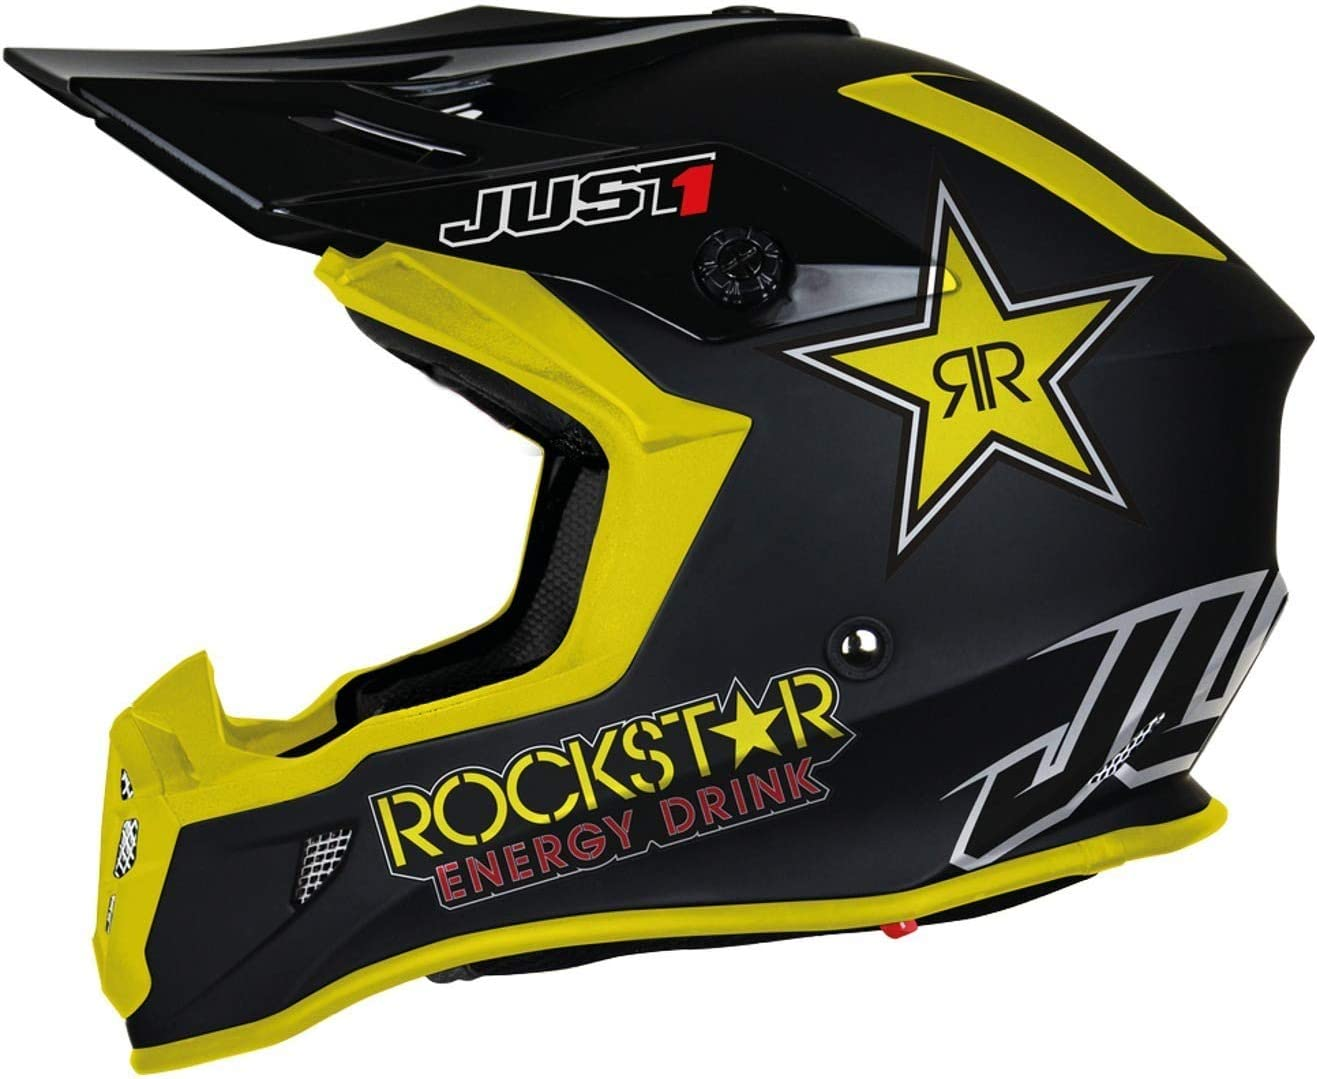 Just1 J38 Rockstar Casque de motocross